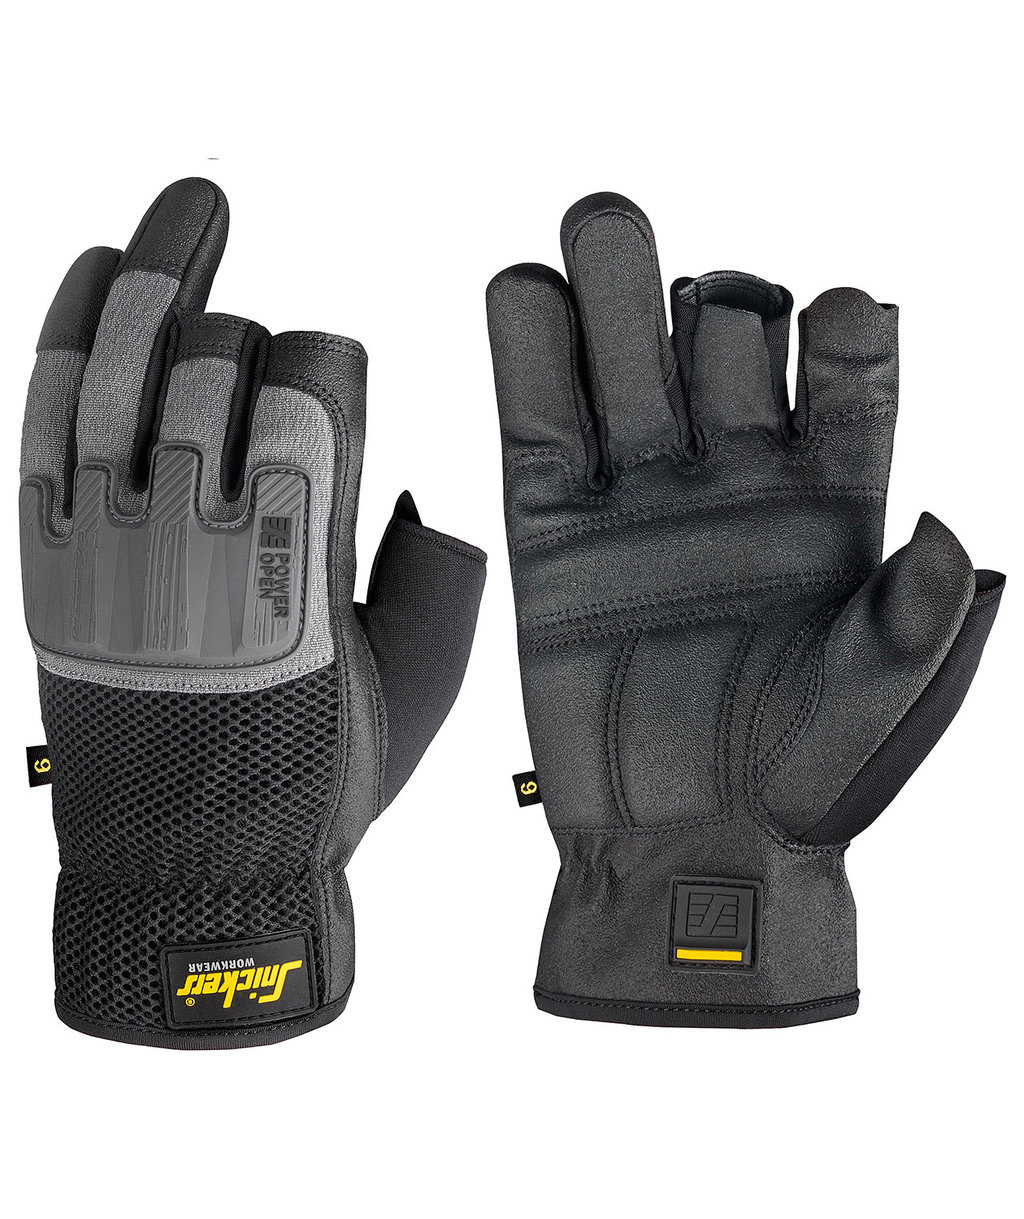 Snickers Power Open work gloves, Black/Stone Grey